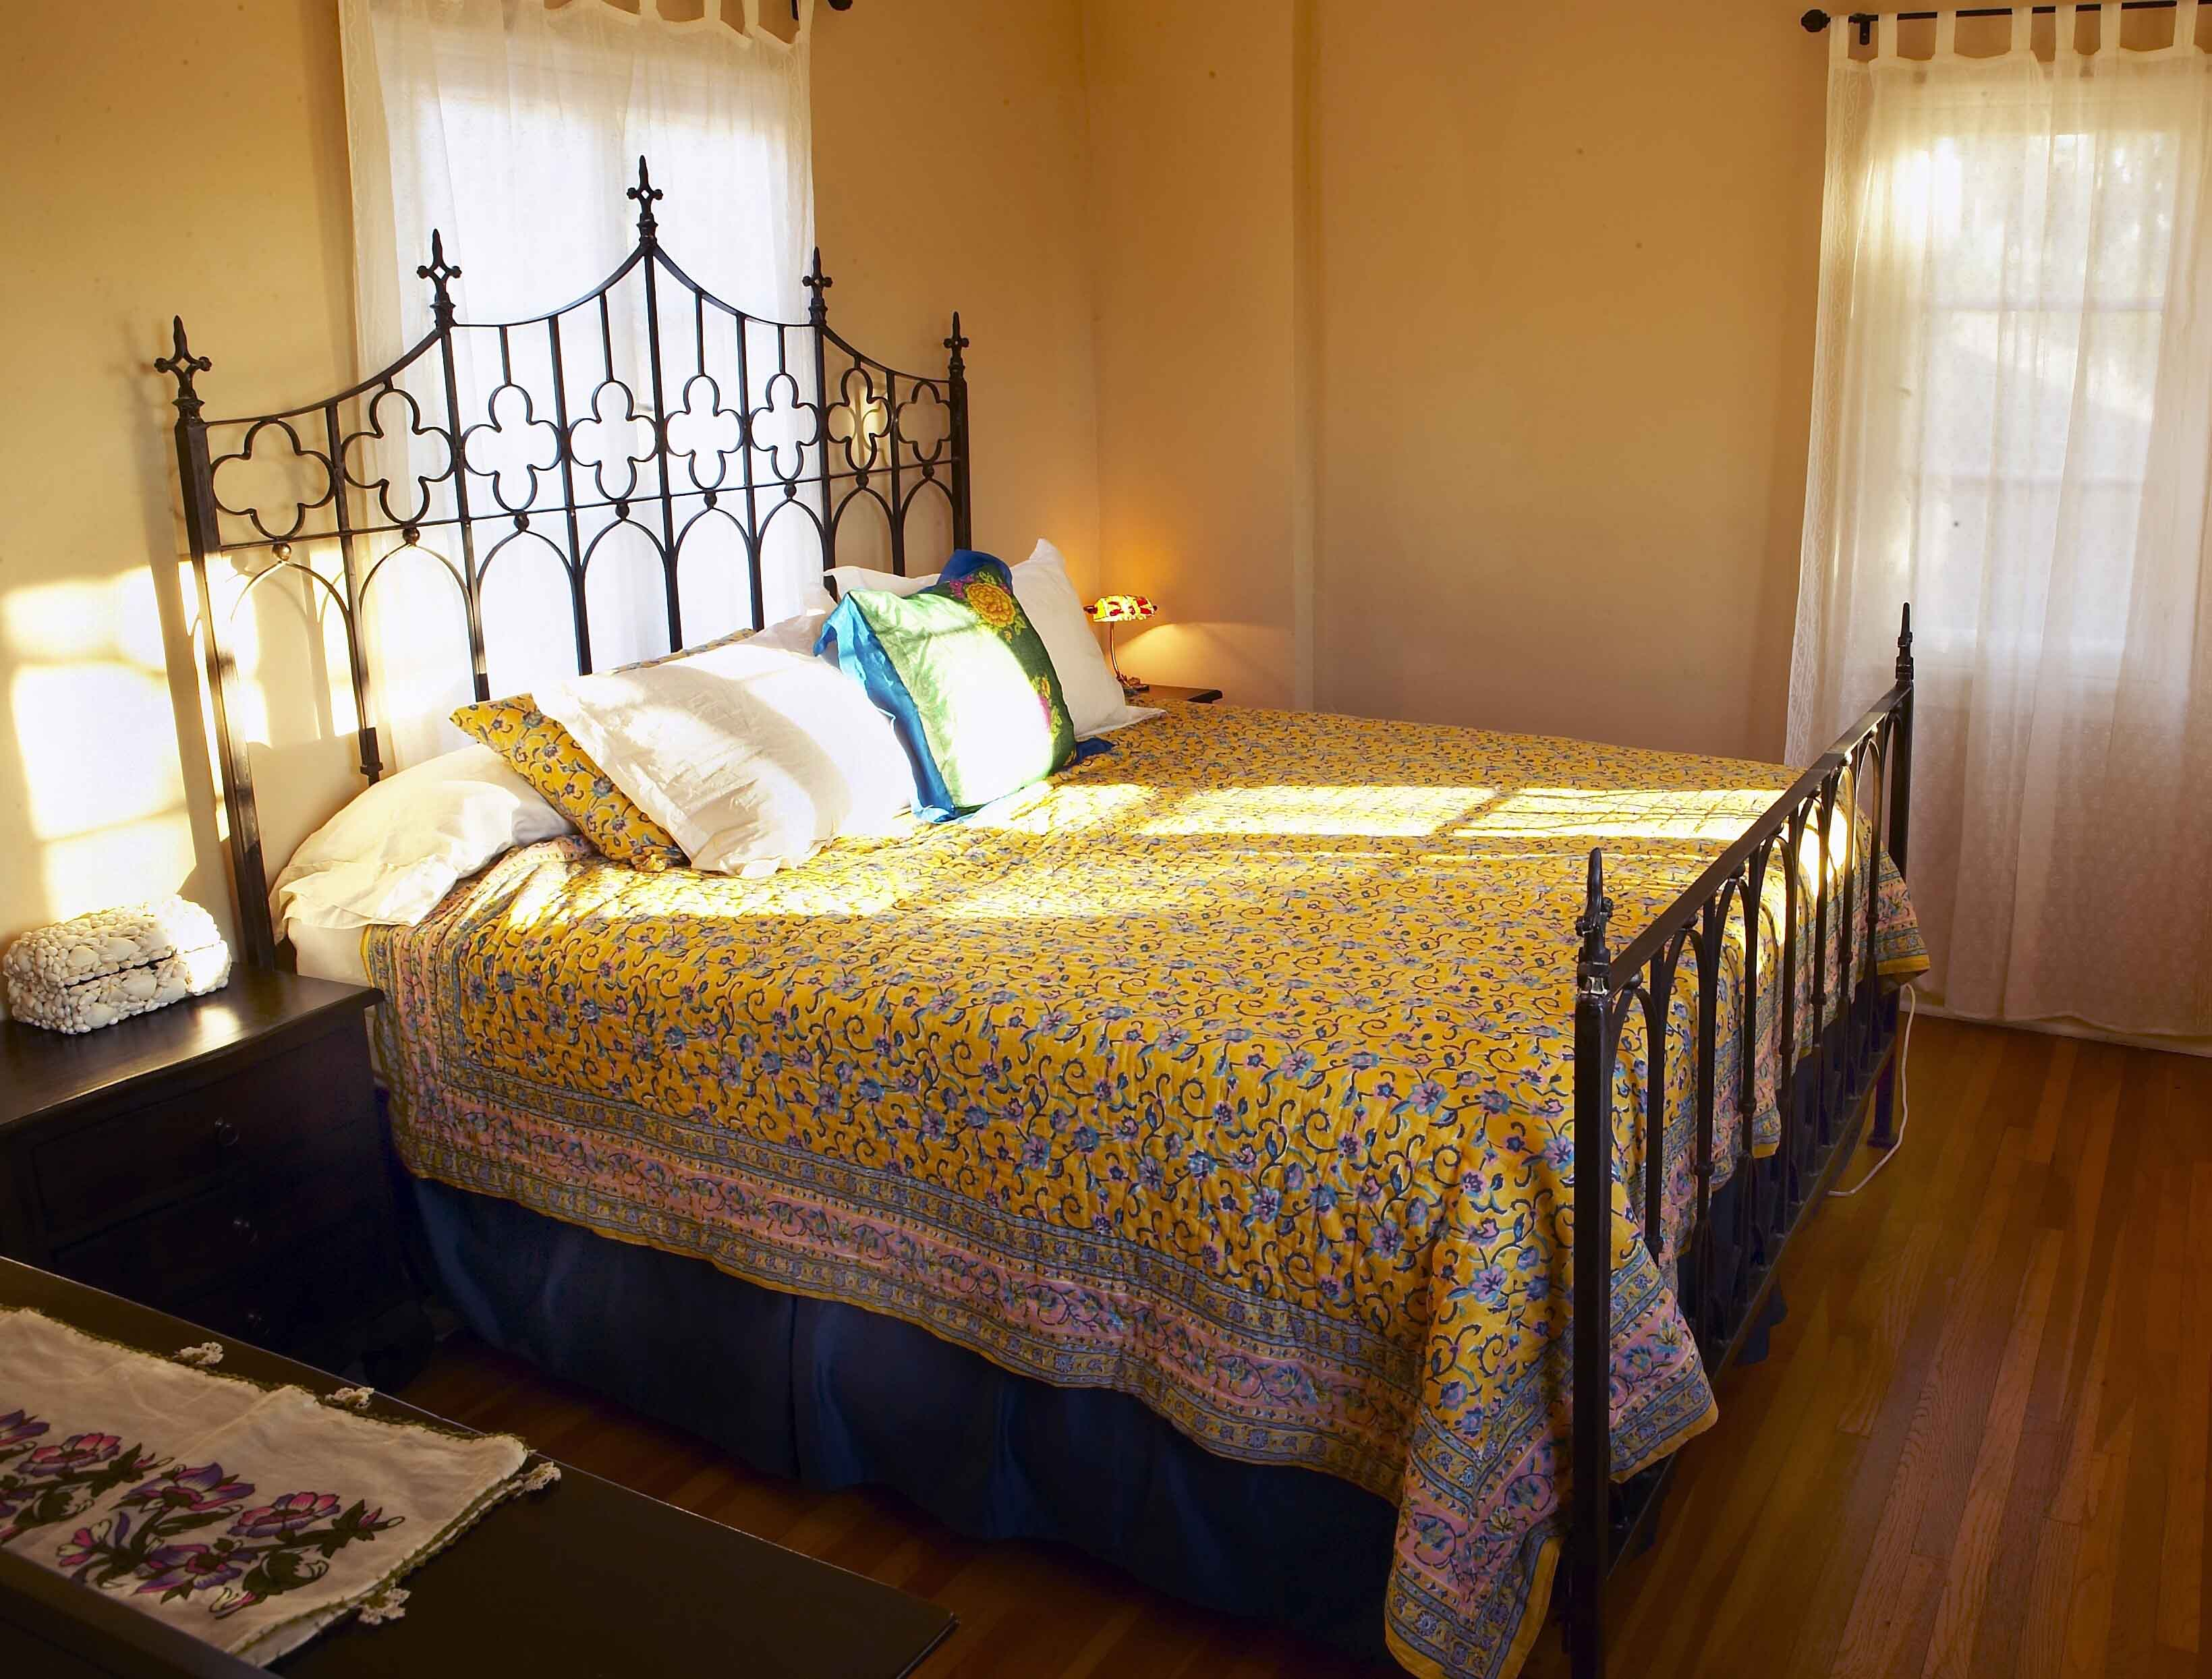 furthur wrought iron and carved teak beds, Headboard designs